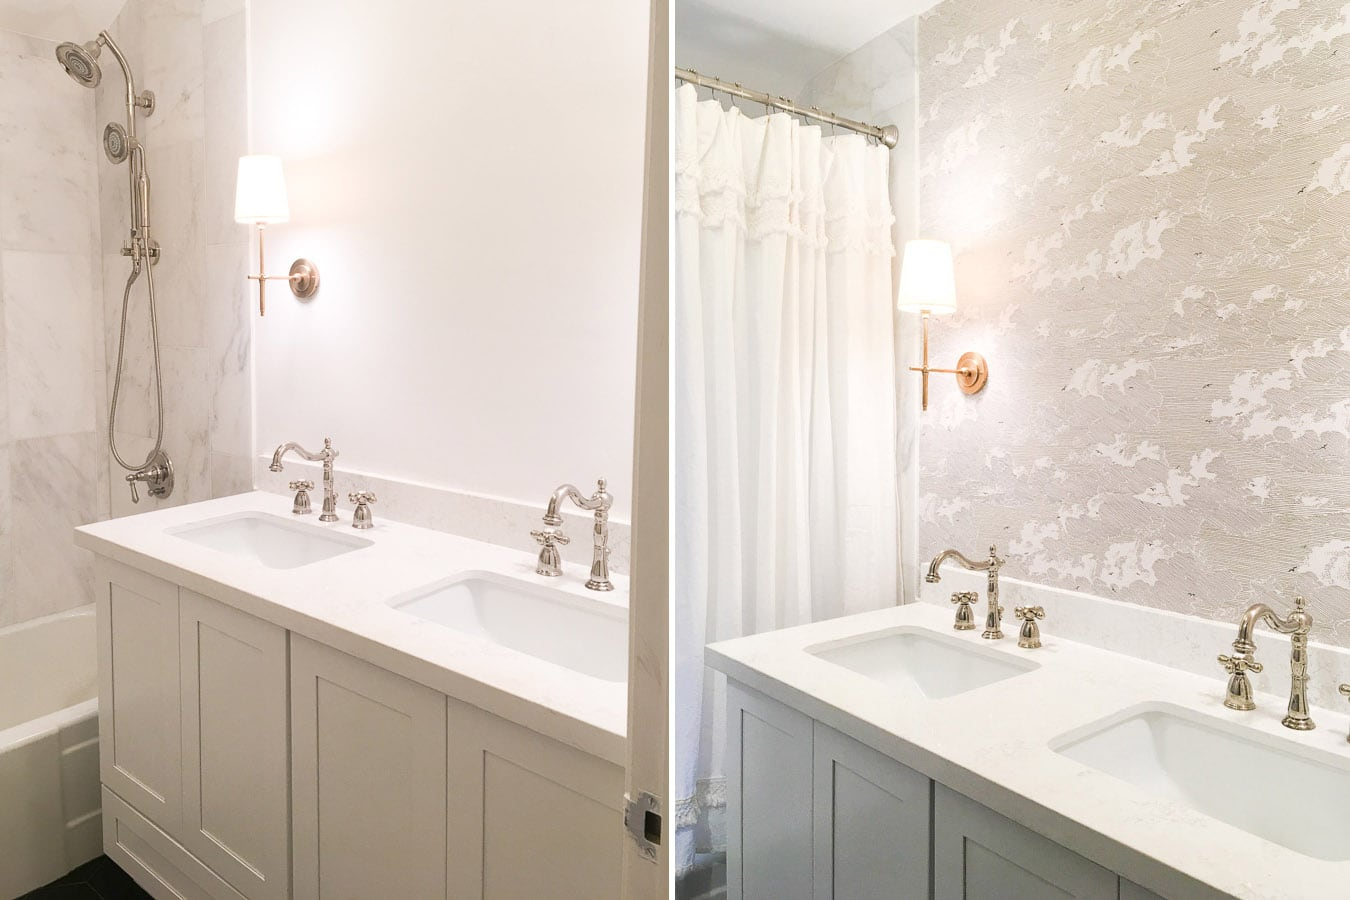 master bathroom remodel, before and after diy wallpaper installation, small bathroom remodel